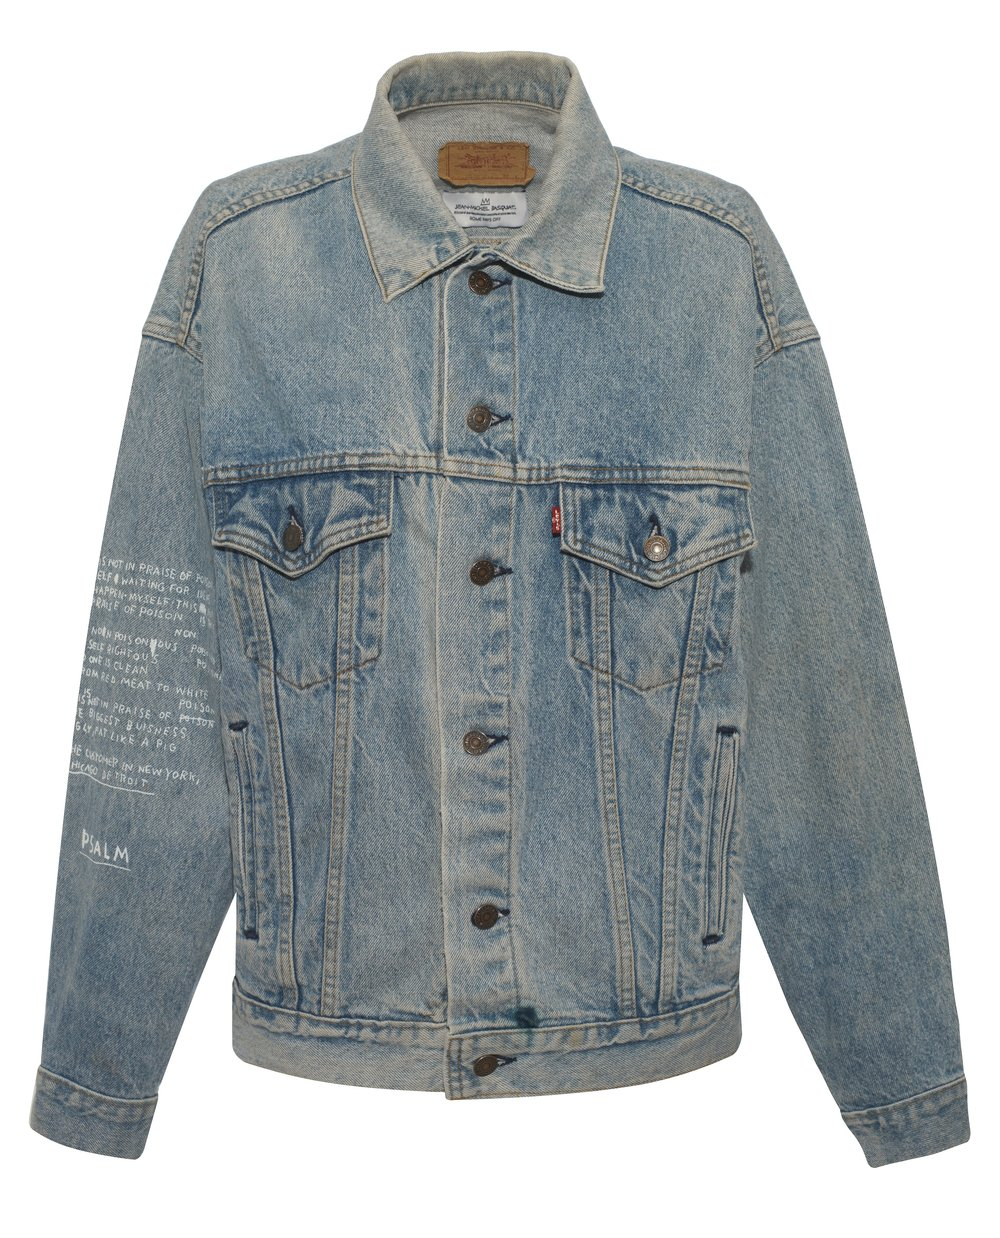 BASQUIAT - DENIM NOTEBOOK JACKET WITH WRITING - £255 - BROWNS FASHION.jpg